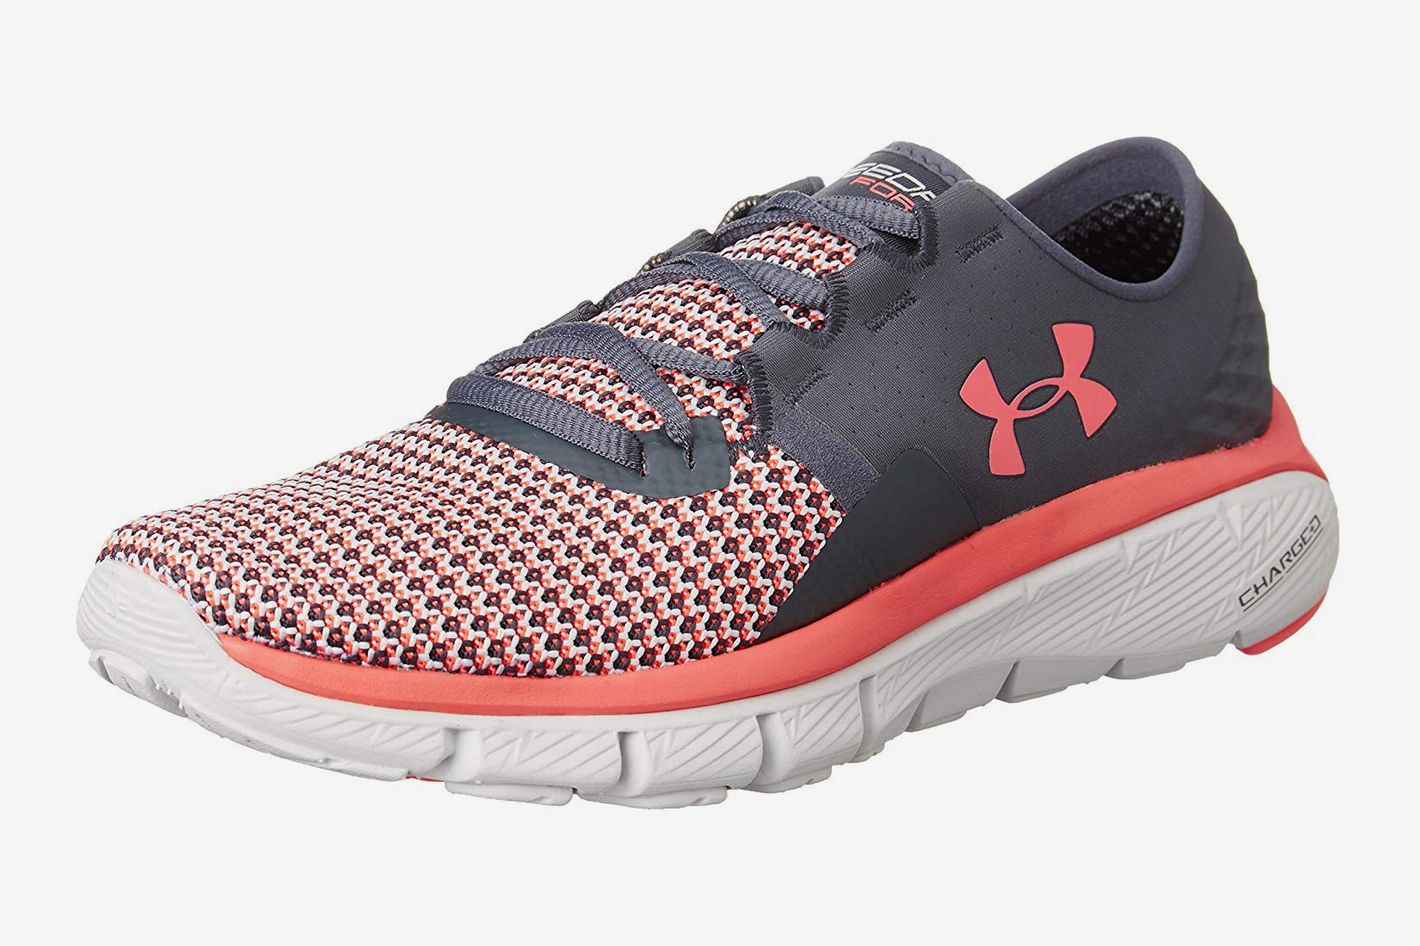 61f2b3de09f1b7 Under Armour Women s UA SpeedForm Fortis 2 Running Shoes